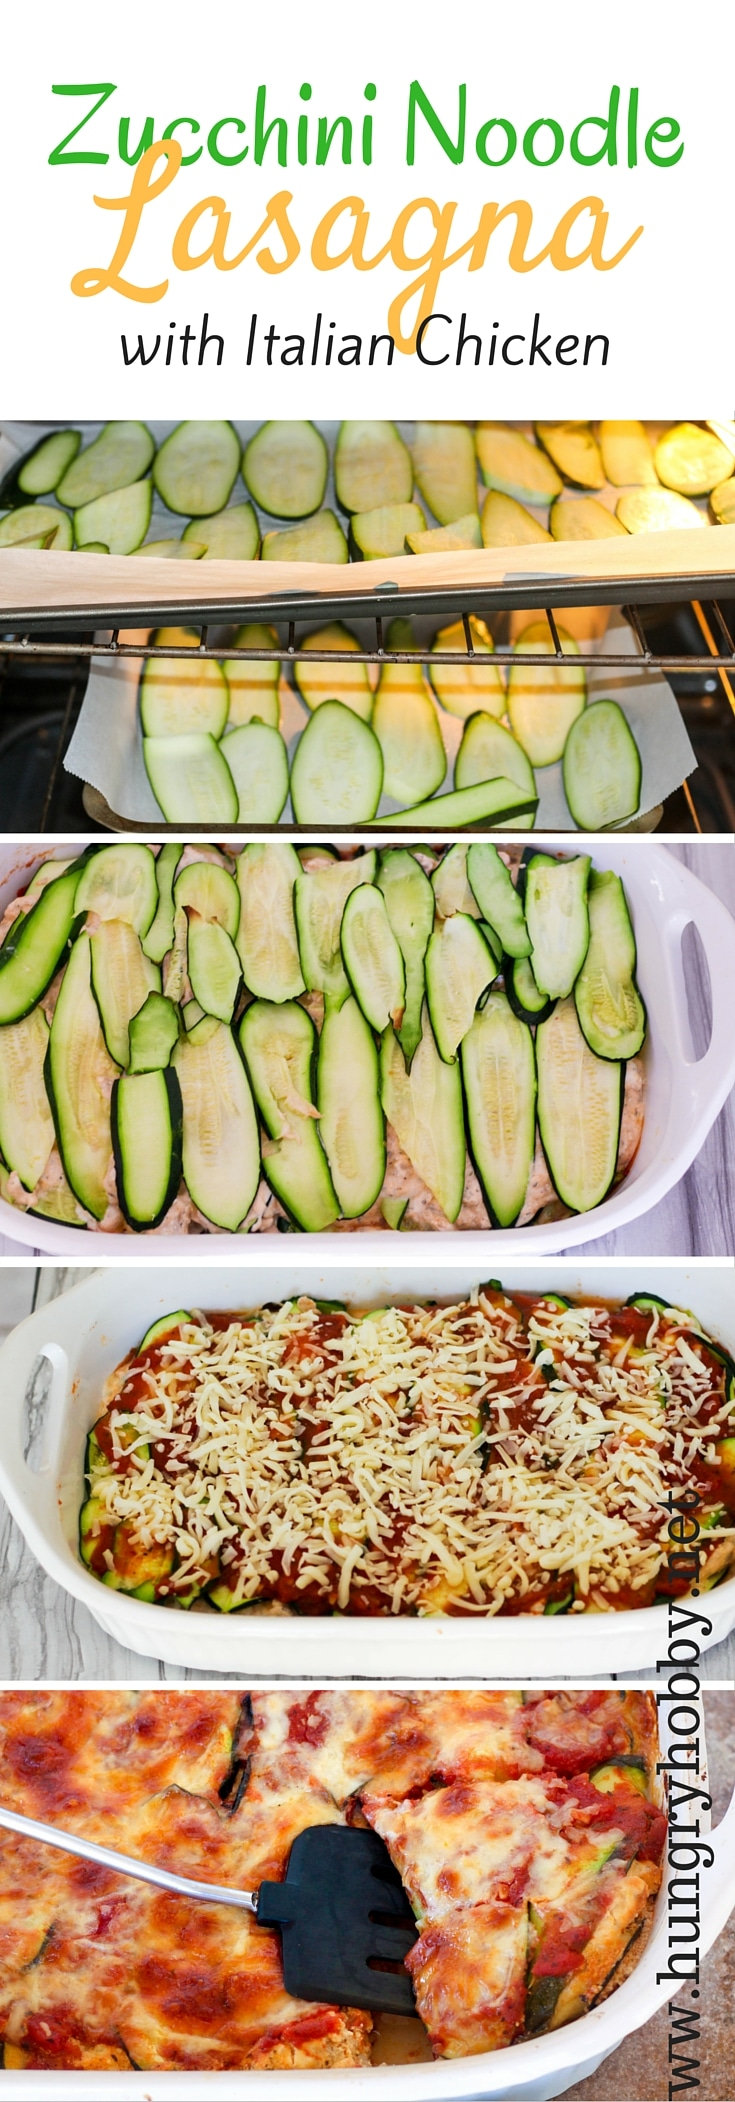 Zucchini lasagna is a veggie, protein and flavor packed healthy dinner! Like all lasagna, it makes a great freezer prep meal and will make enough to feed everyone! #glutenfree #grainfree #keto #lowcarb #healthy #reciperedux